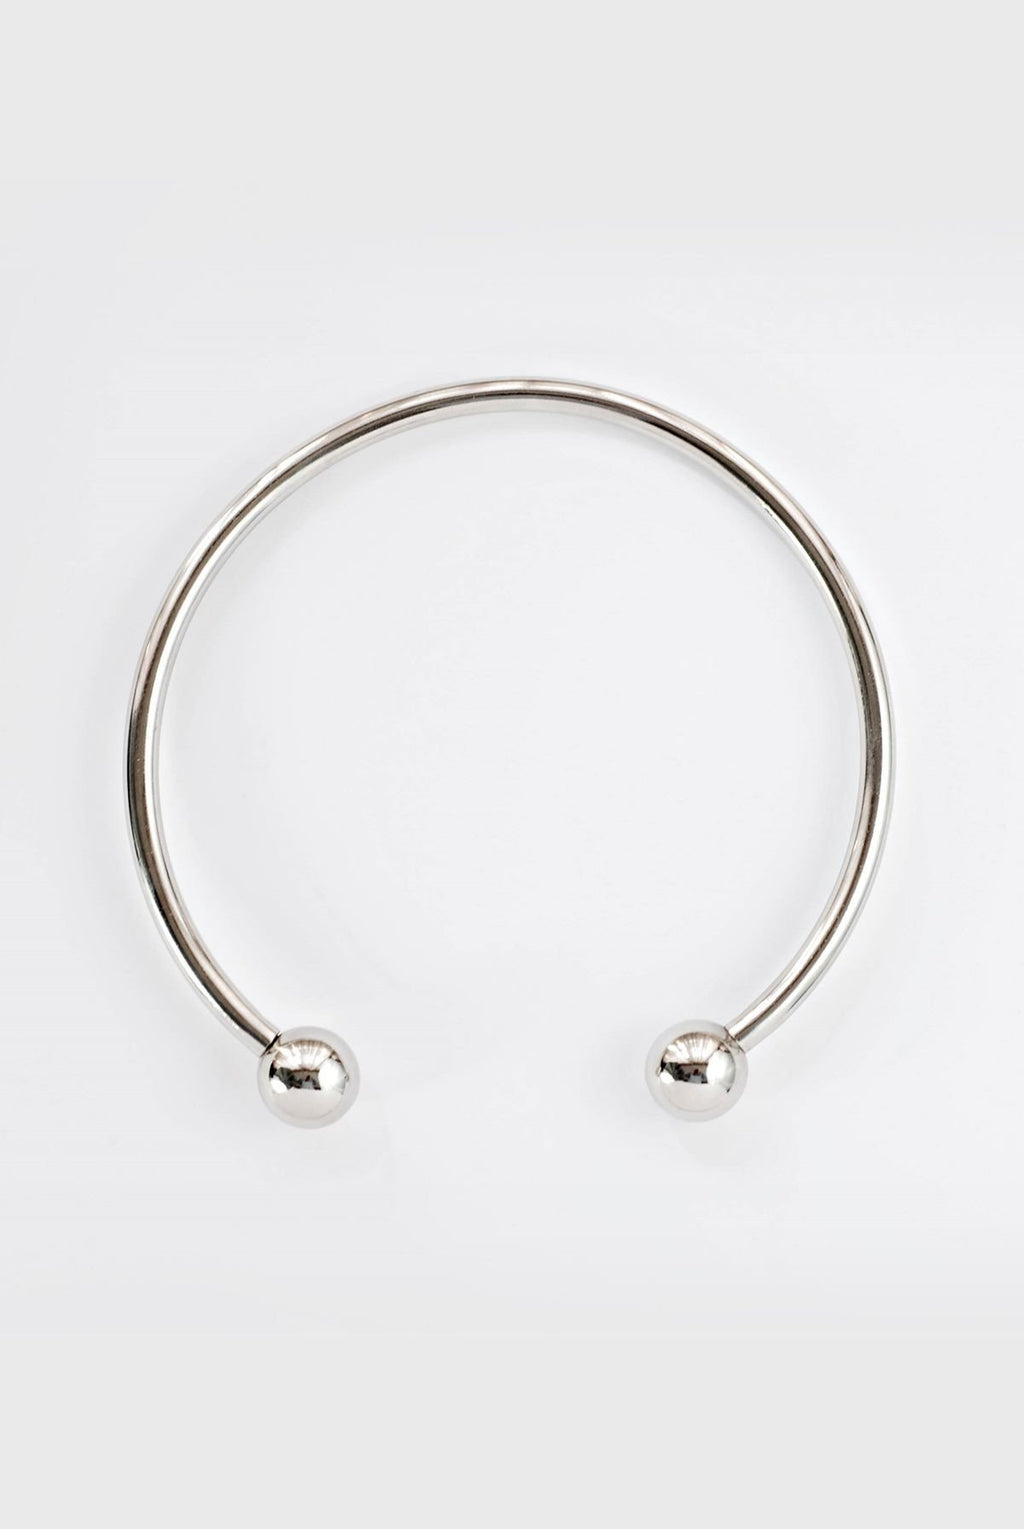 Double Take Choker - Boutique Minimaliste